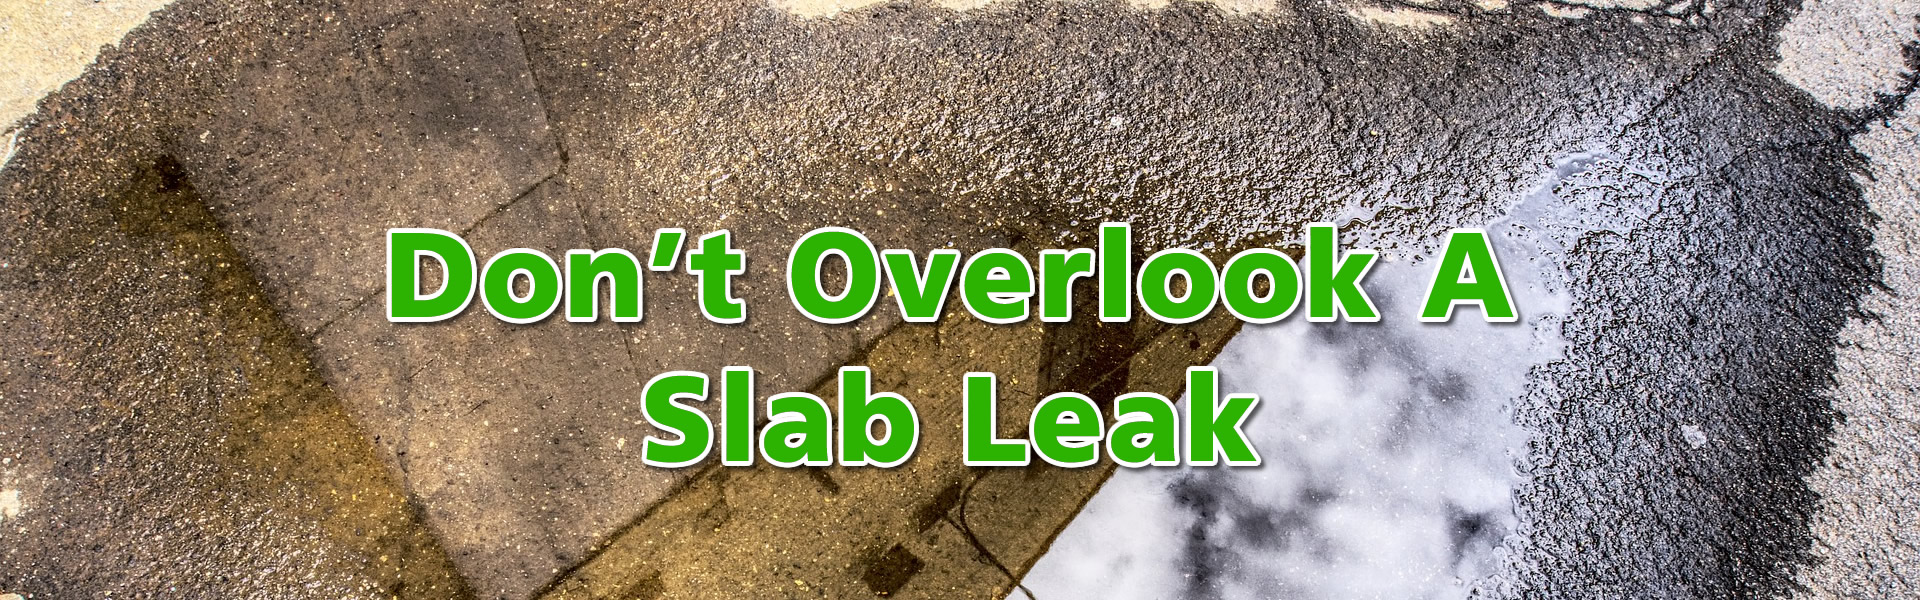 Don't Overlook a Slab Leak